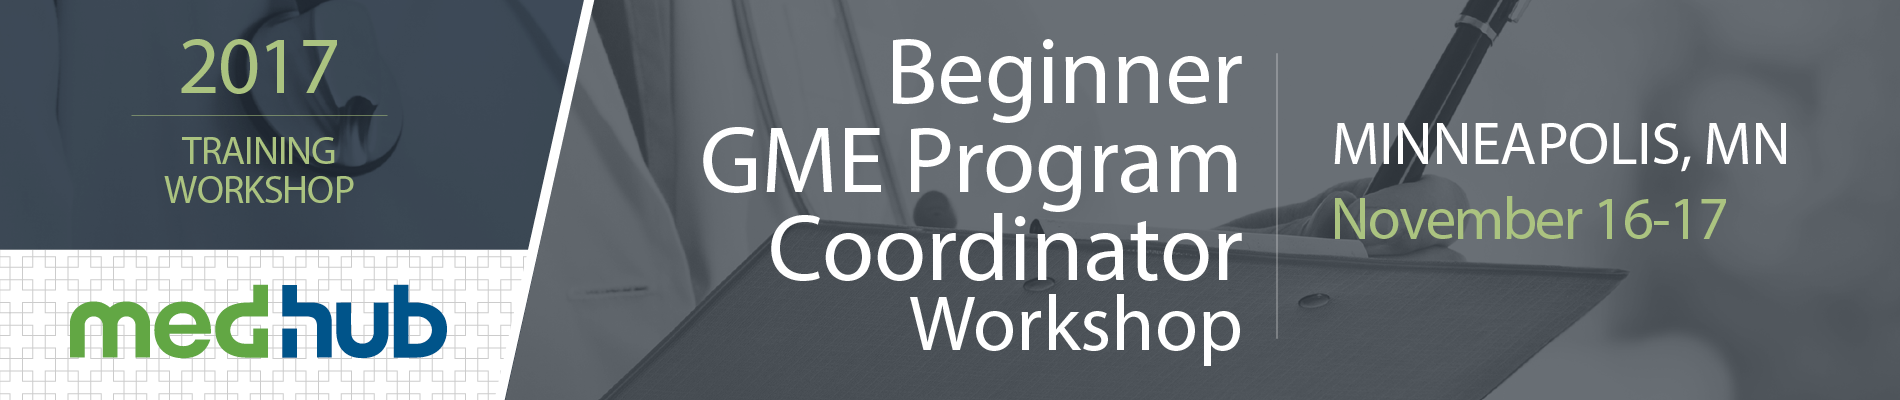 MedHub New GME Program Coordinator Workshop (November 16 & 17)